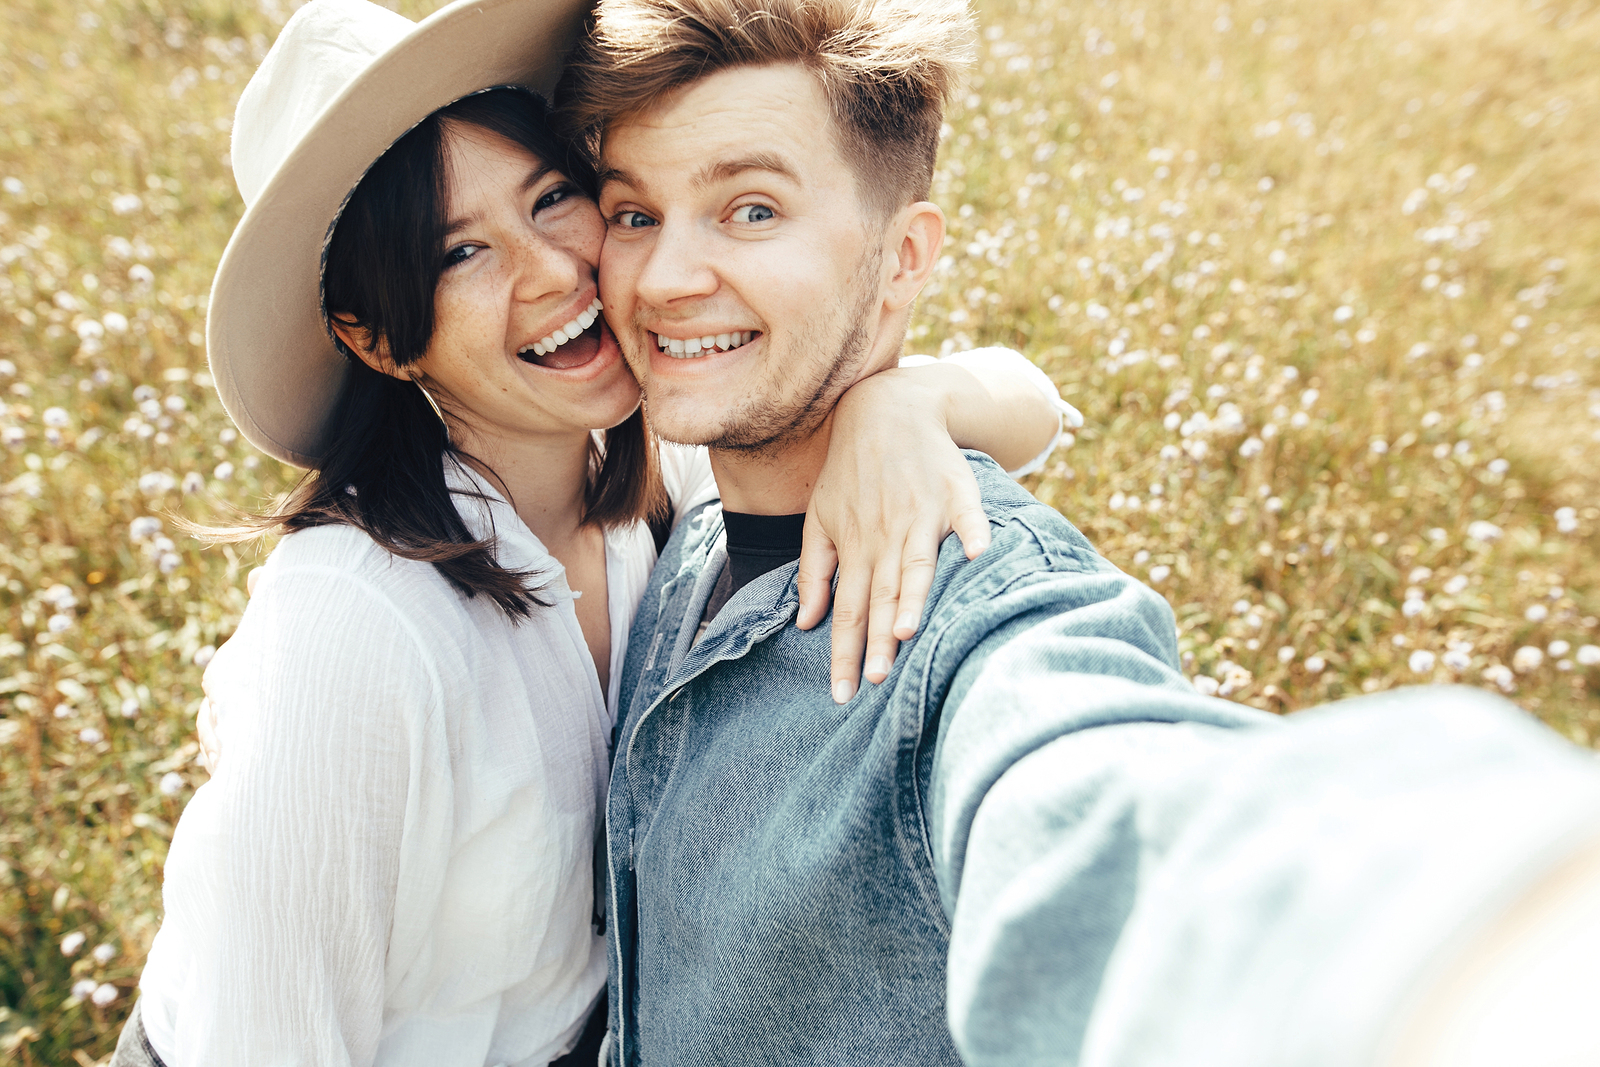 friendship in marriage - young couple taking big smiling selfie together outdoors in a field